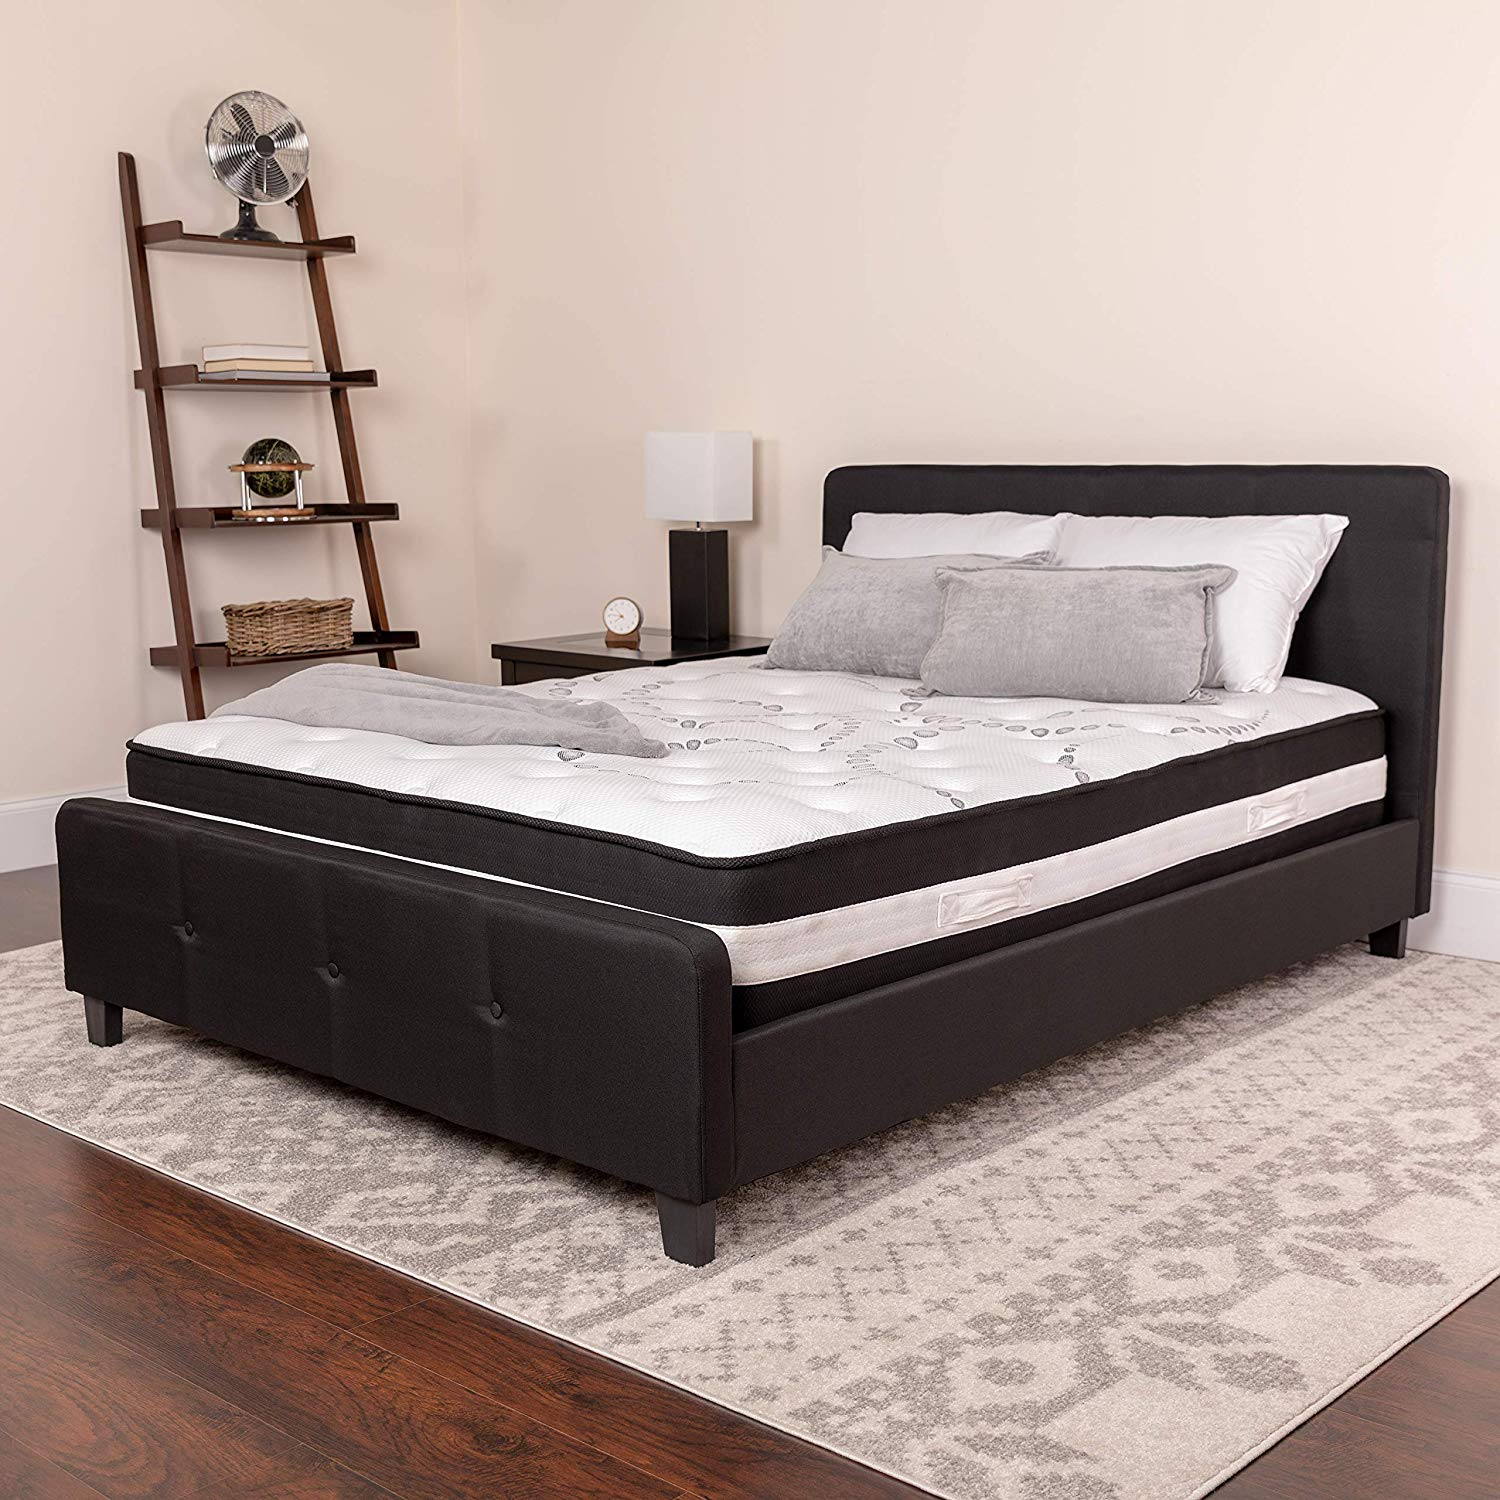 Flash Furniture Capri Comfortable Sleep 12 Inch Foam and Pocket Spring Mattress Review